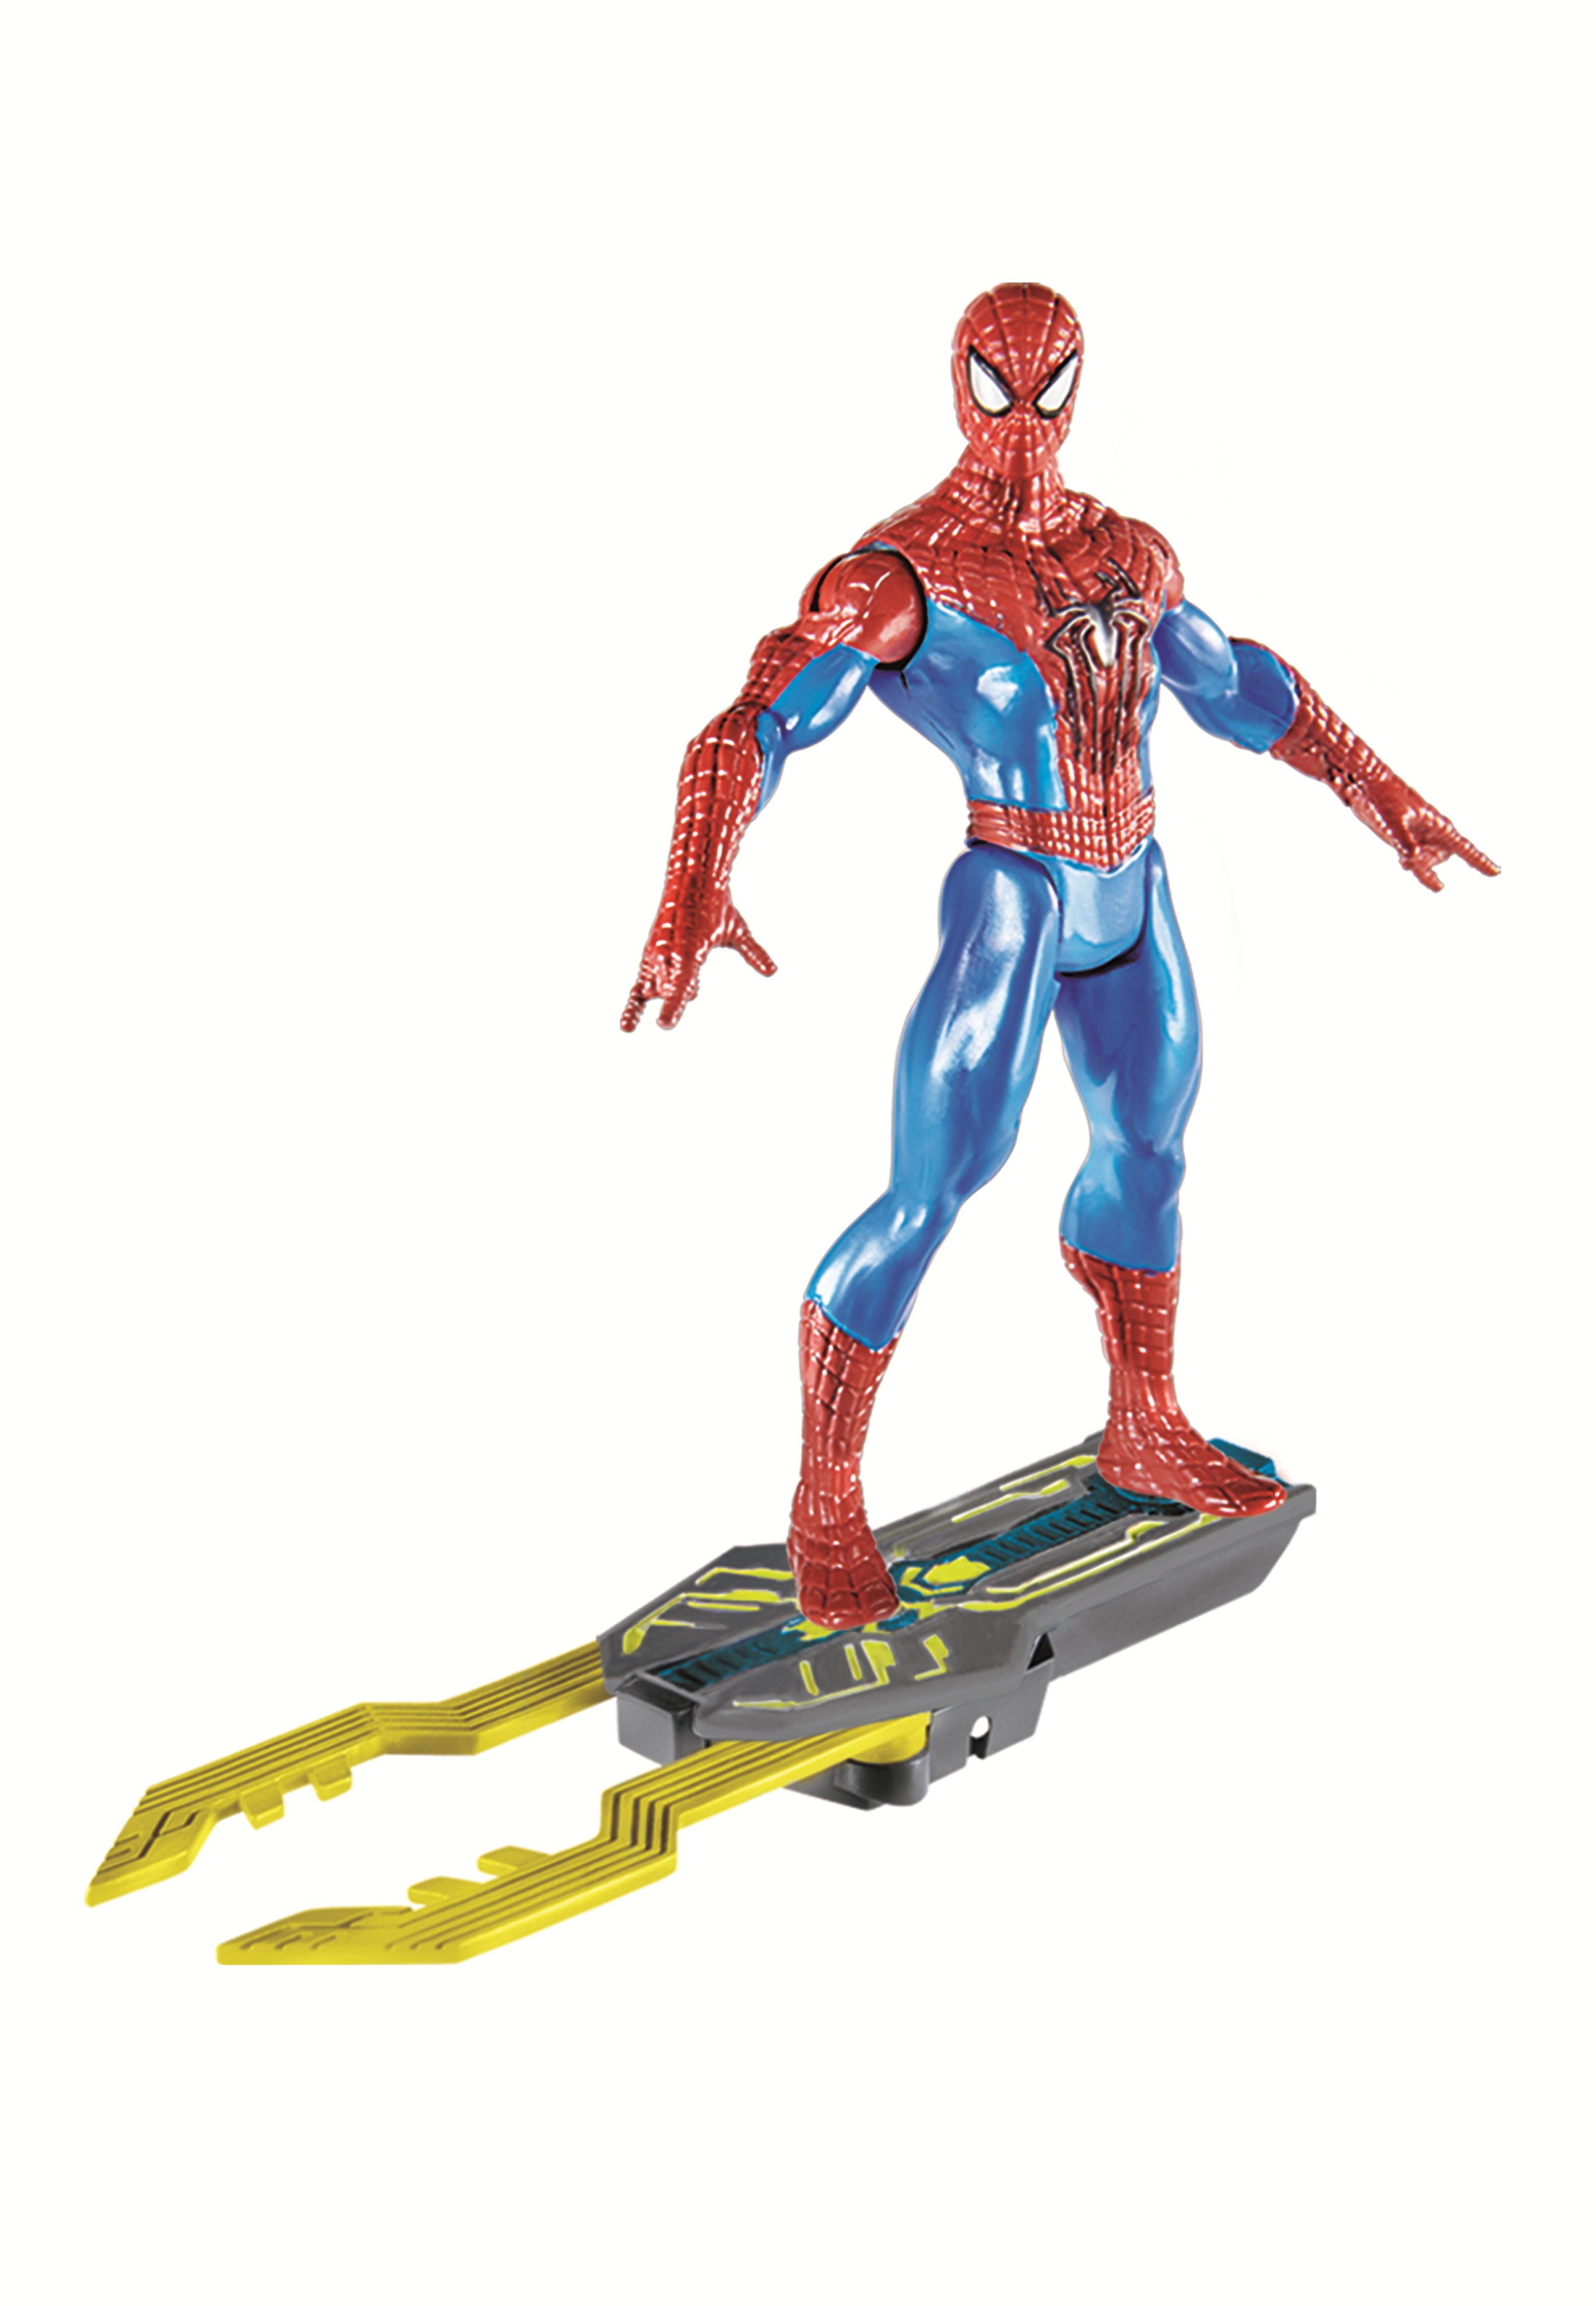 New Spider Man 2 Toys : Hasbro amazing spiderman toys press release and images